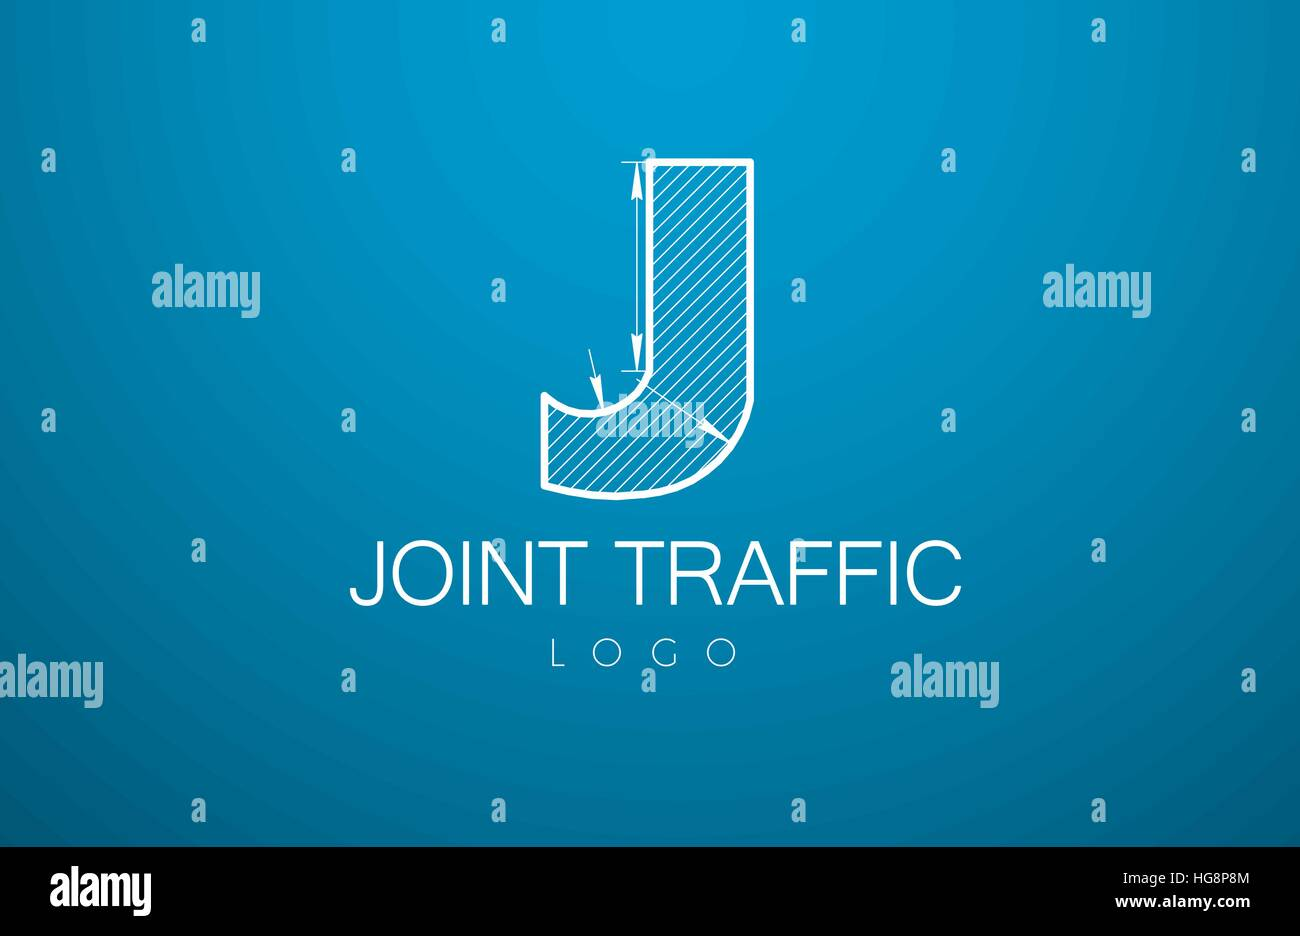 logo template letter j in the style of a technical drawing sign design and the text joint traffic with dimension lines vector illustration